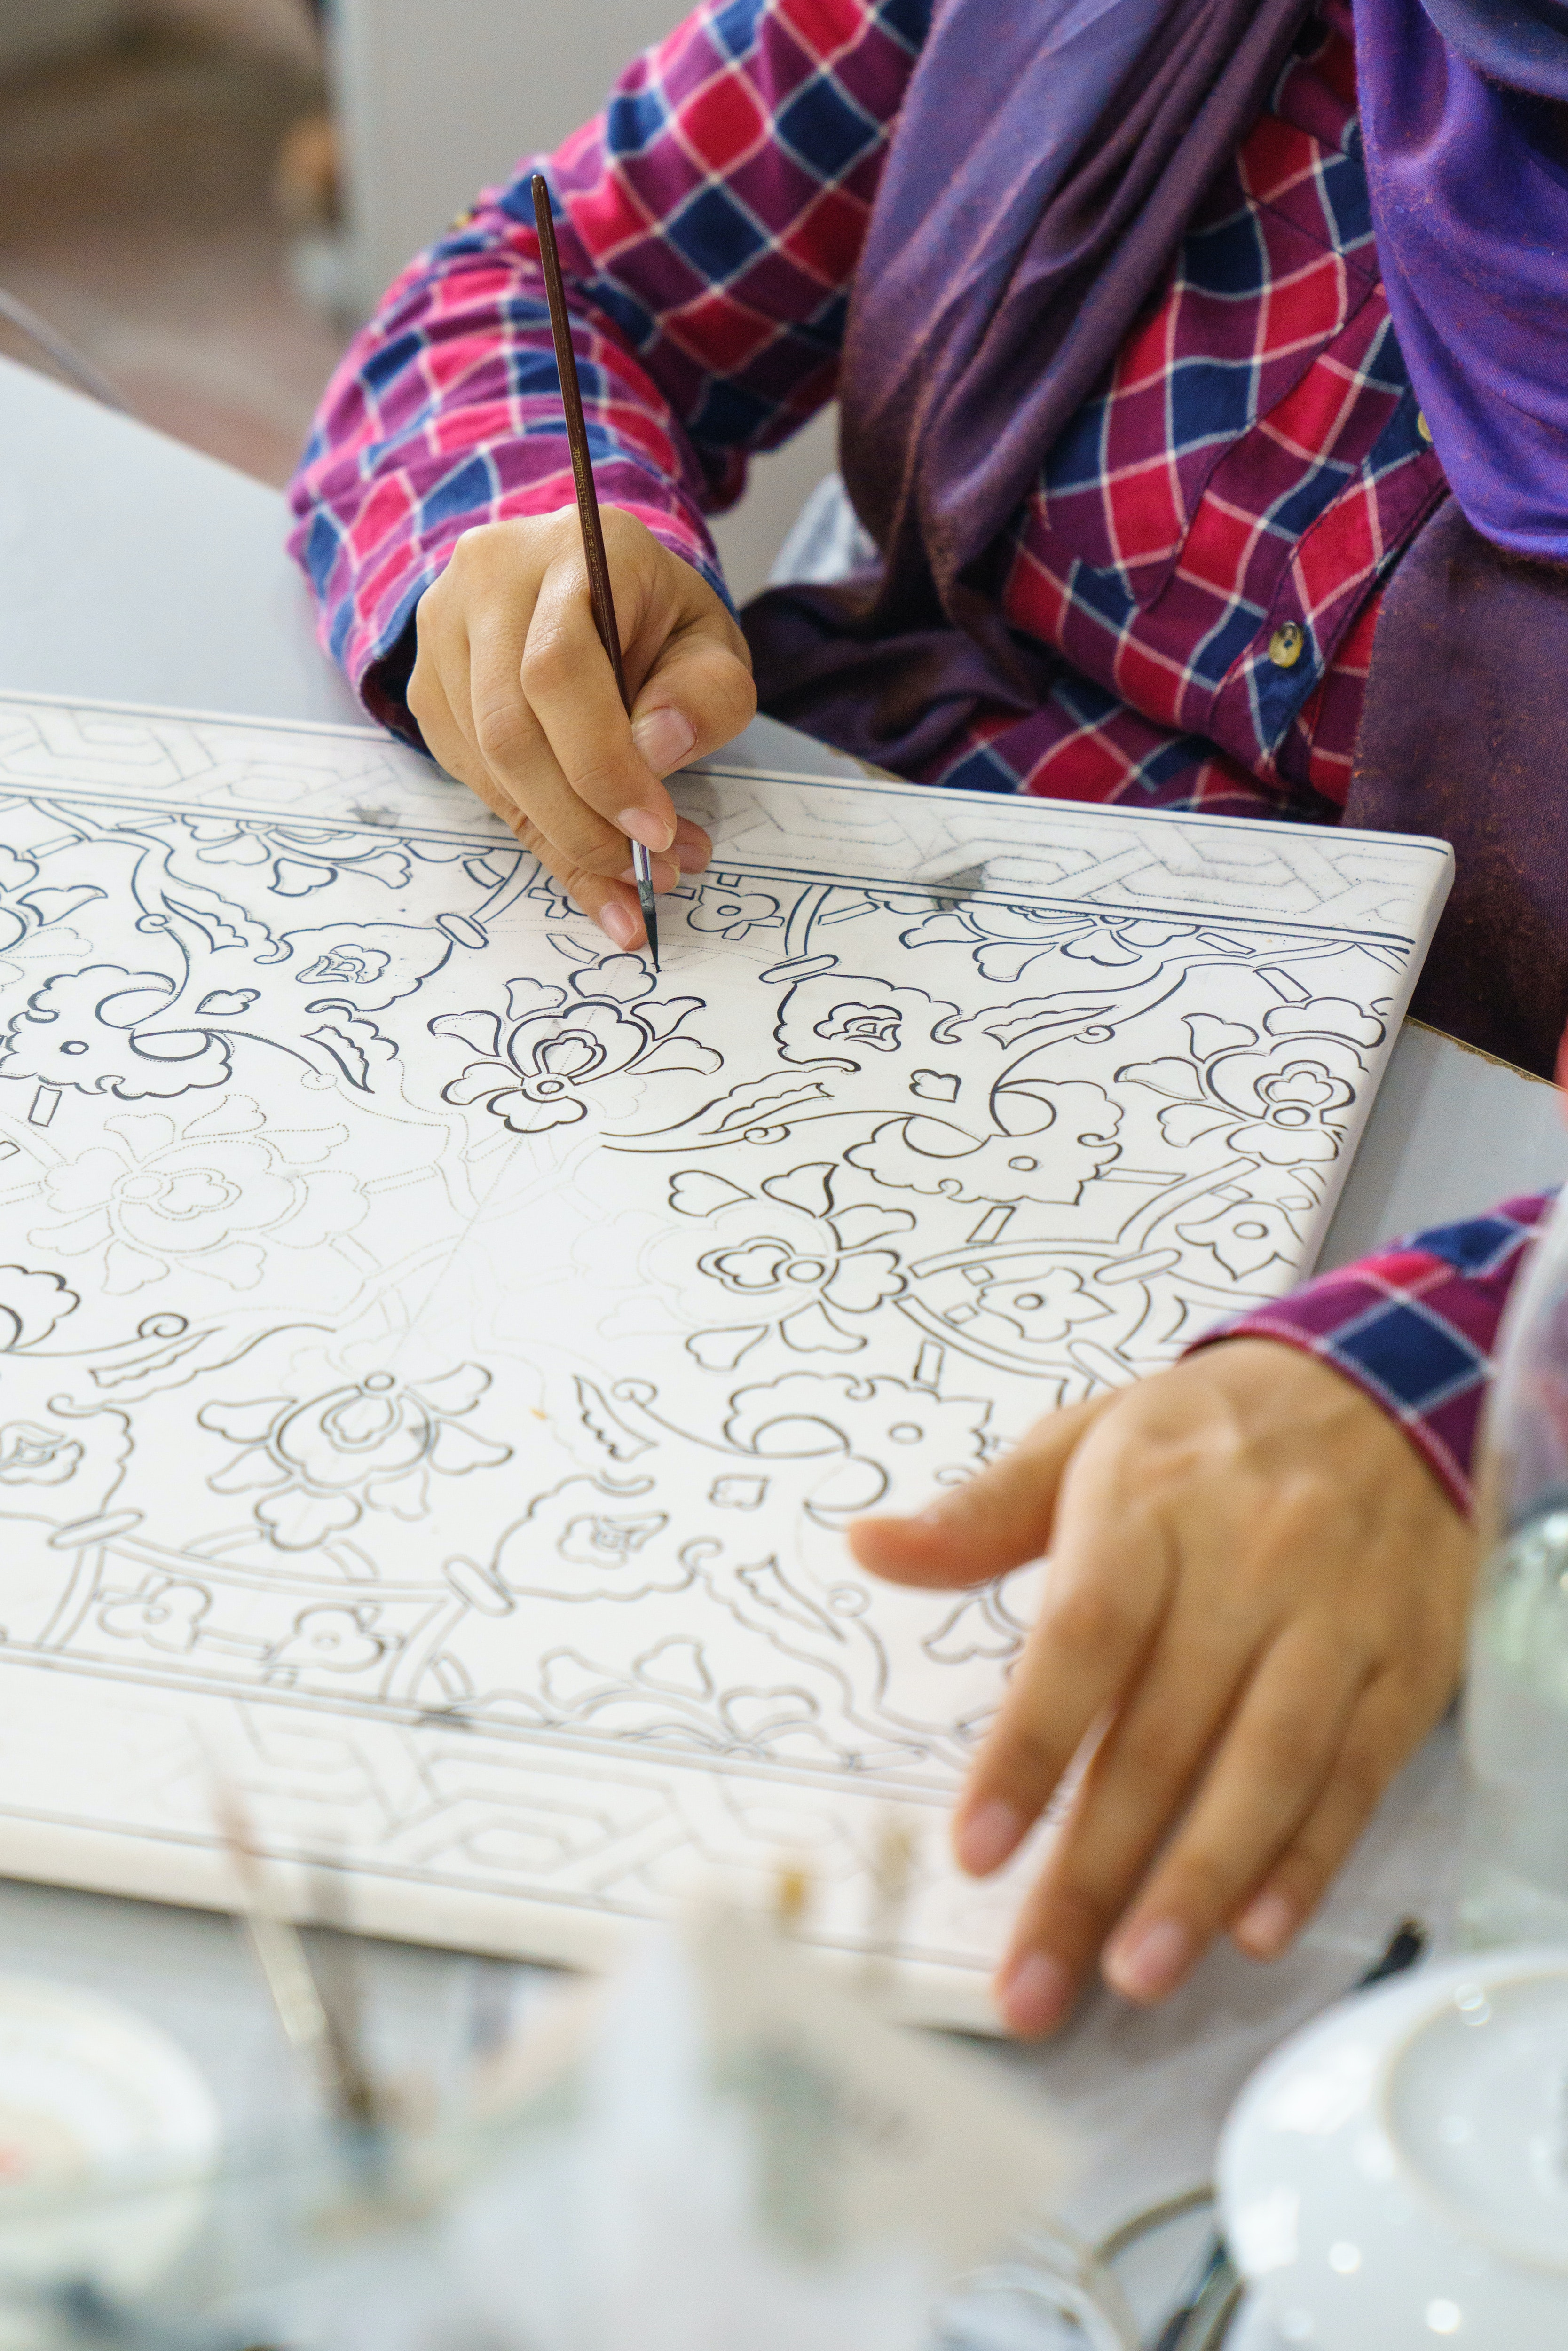 Designs are first drawn on sketching paper and perforated with a small needle.